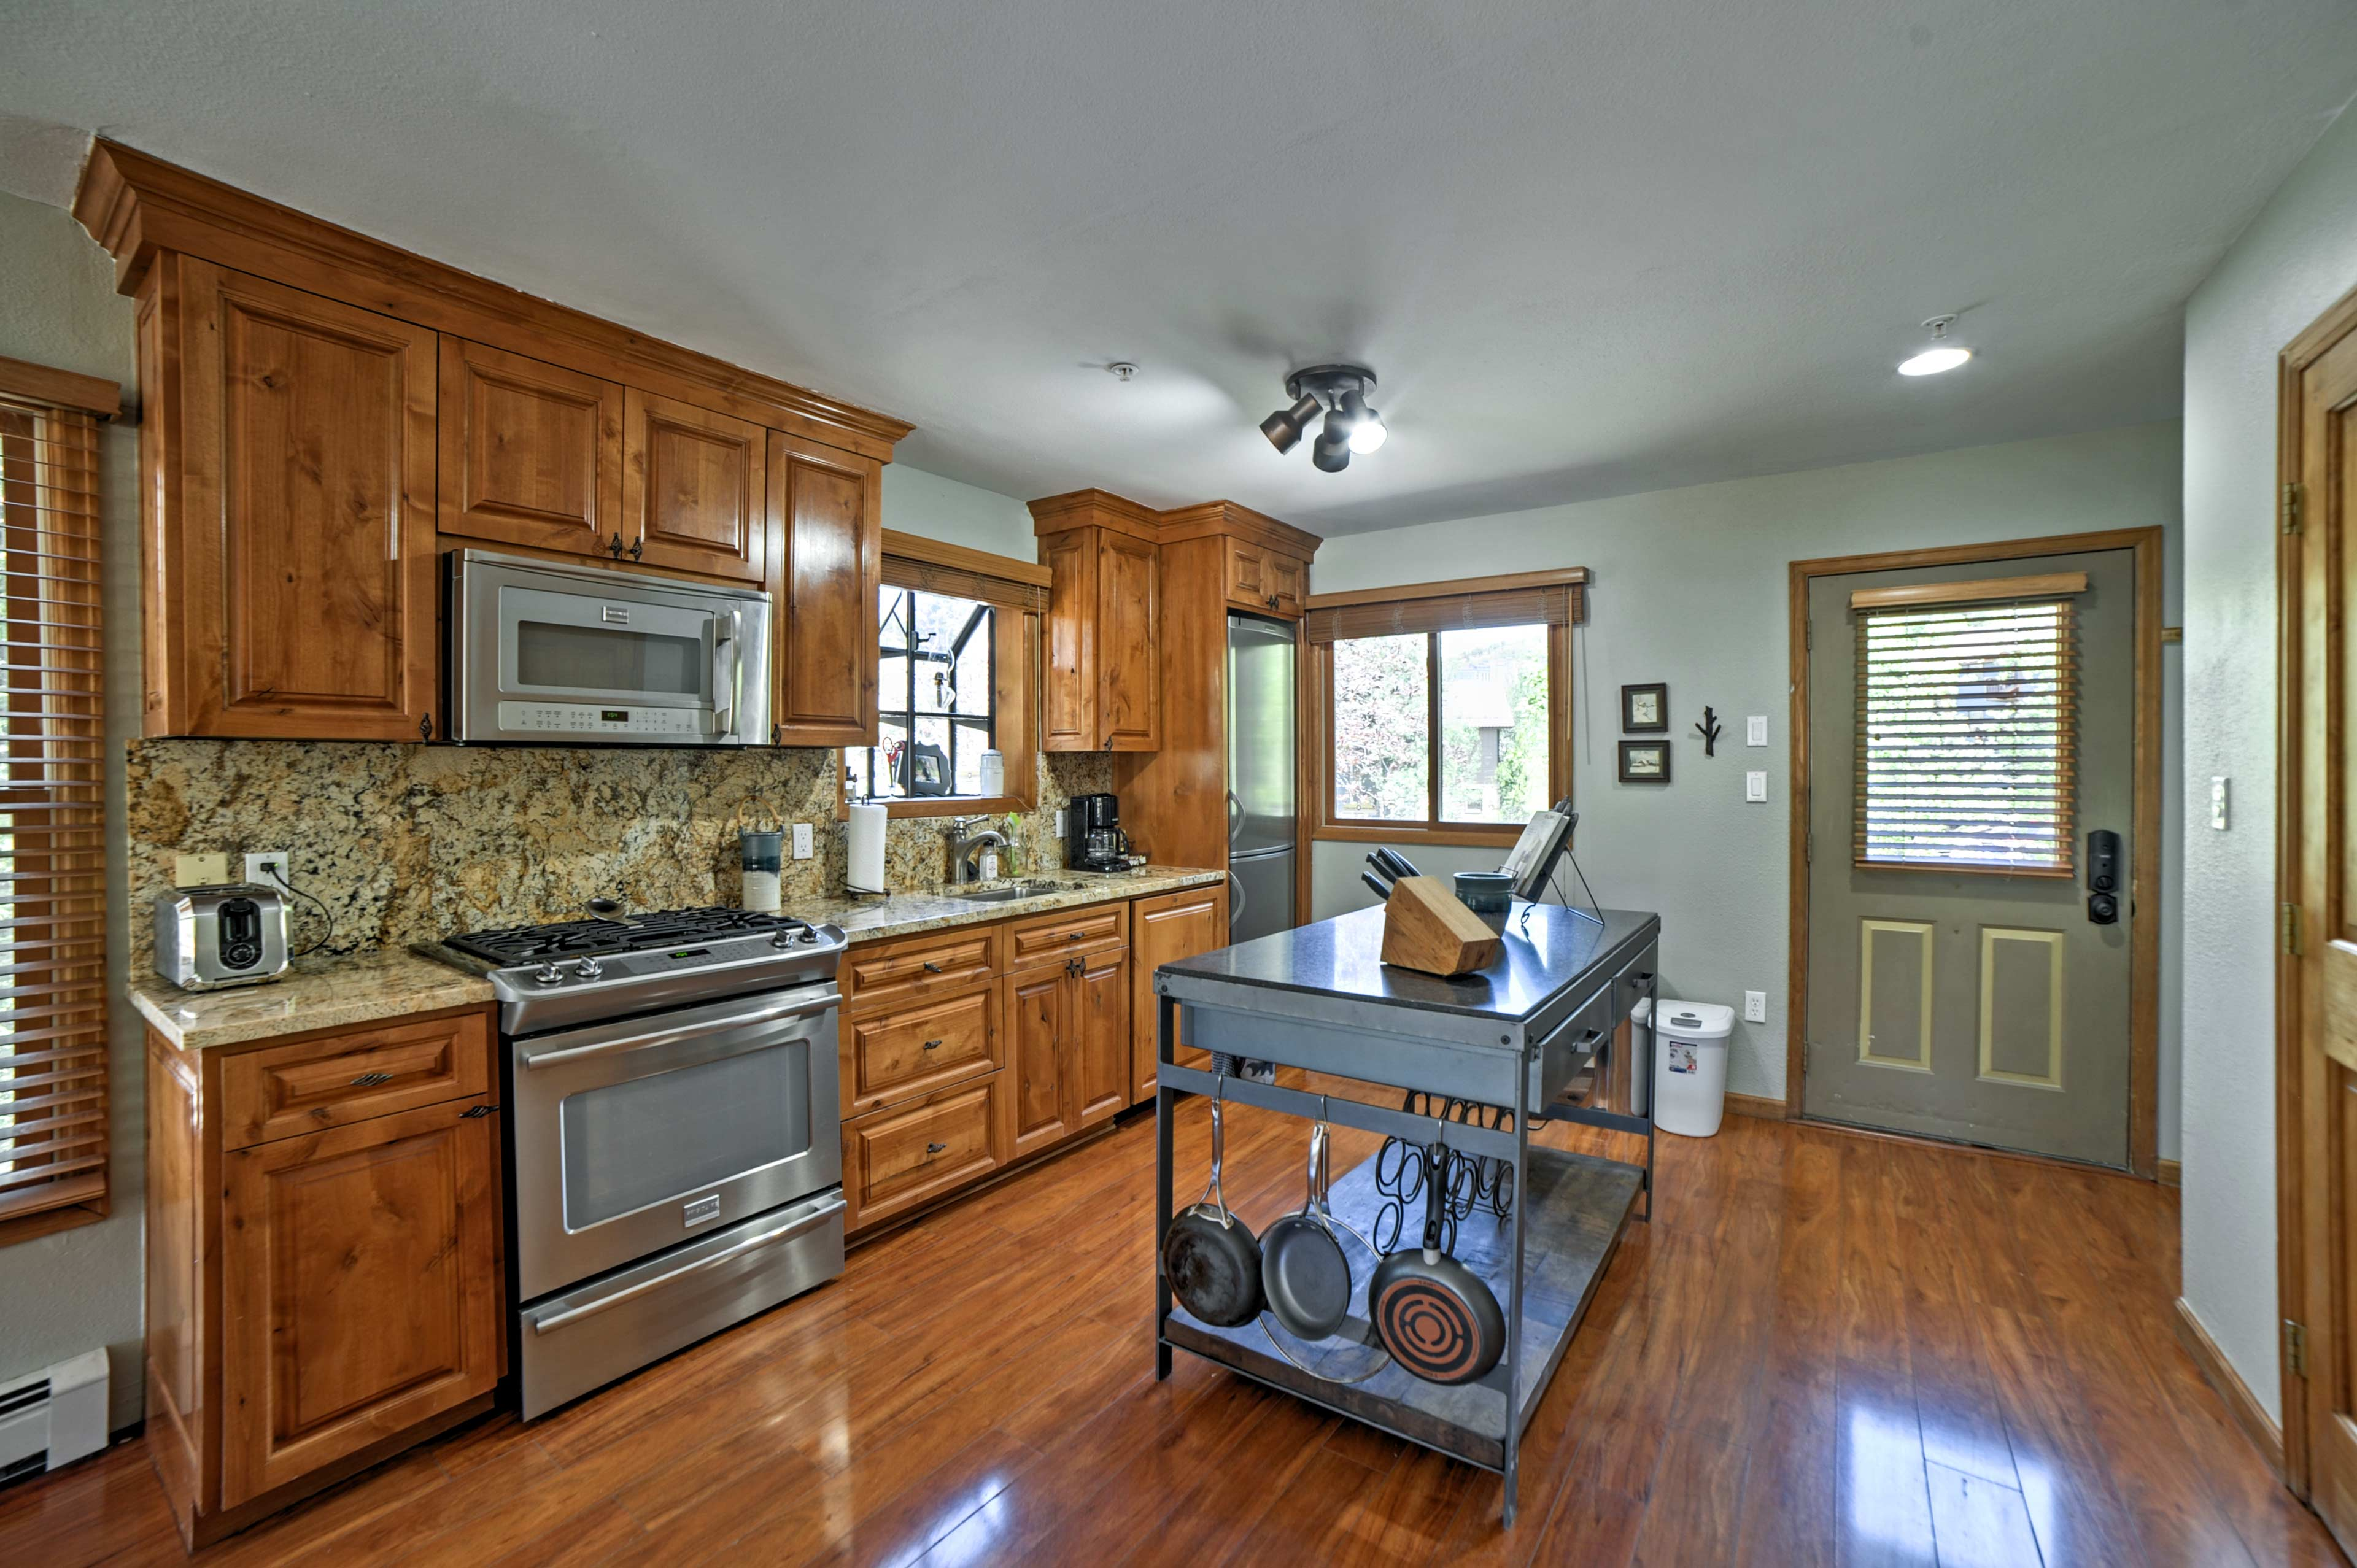 Utilize the fully equipped kitchen for home-cooked cuisine.